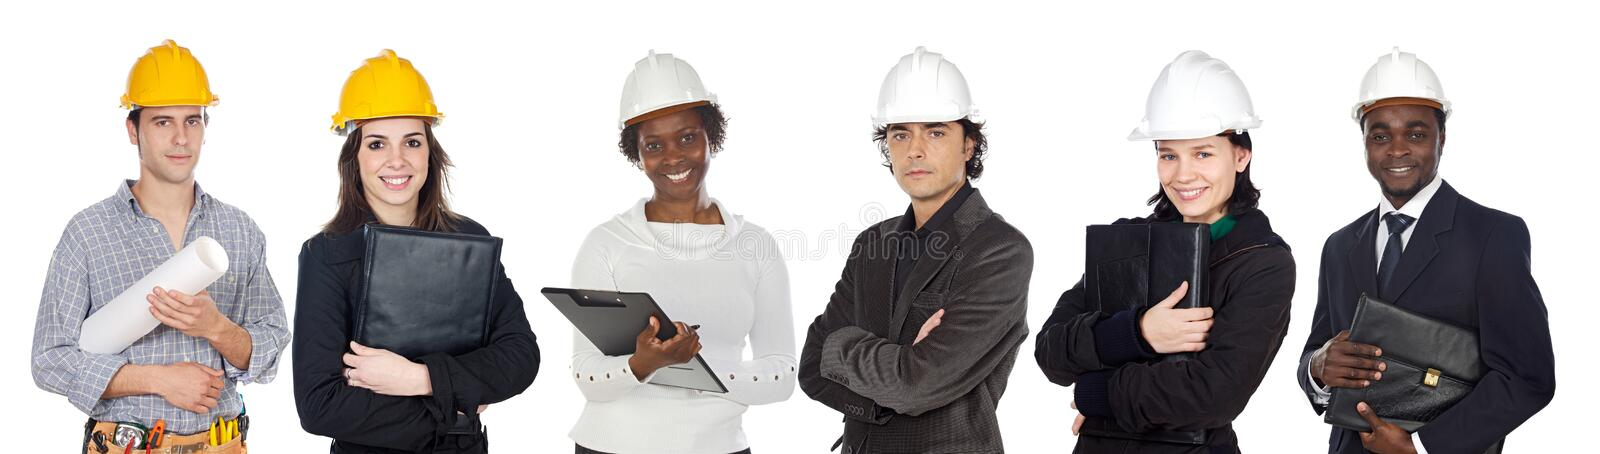 Team of construction workers royalty free stock images